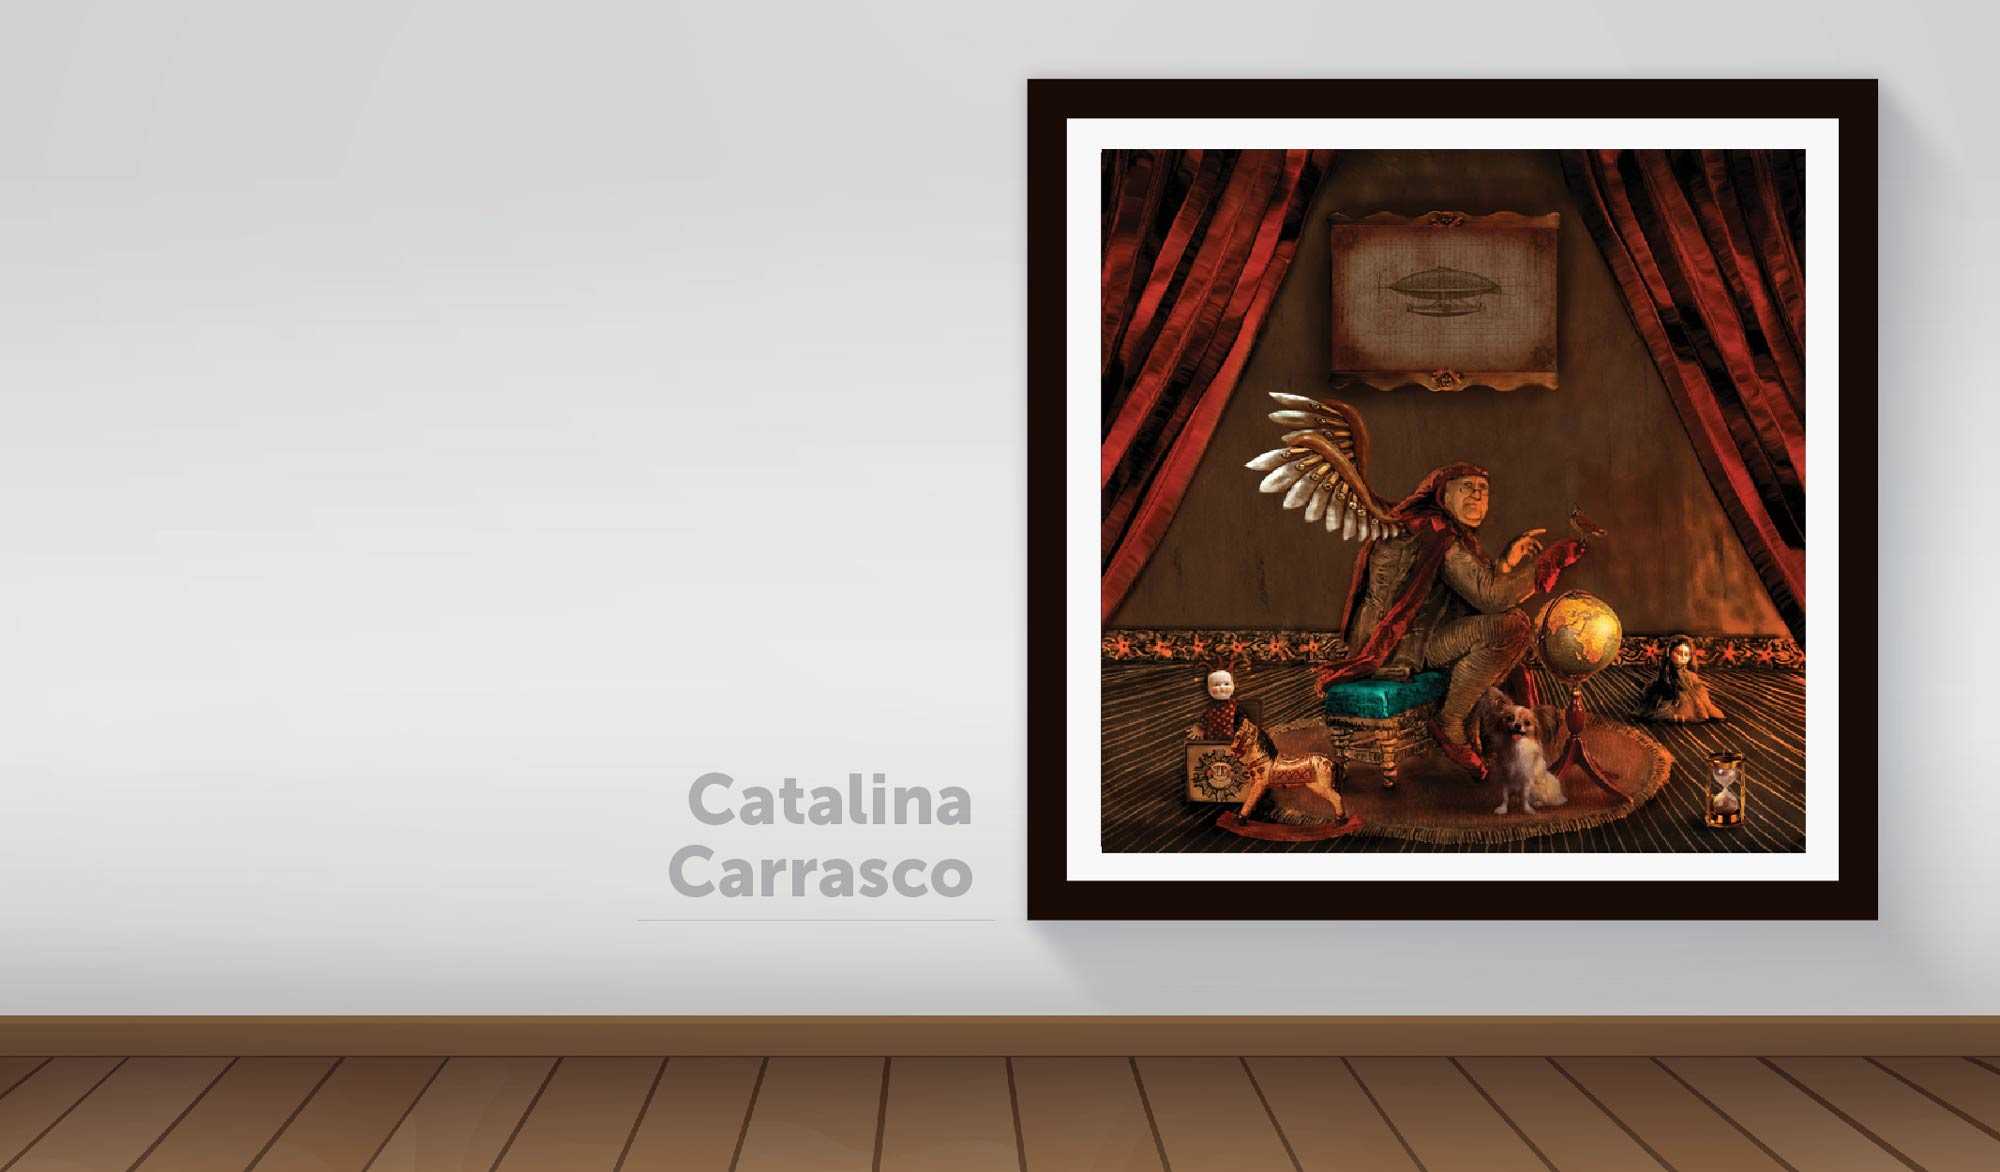 catalina-carrasco2.jpg